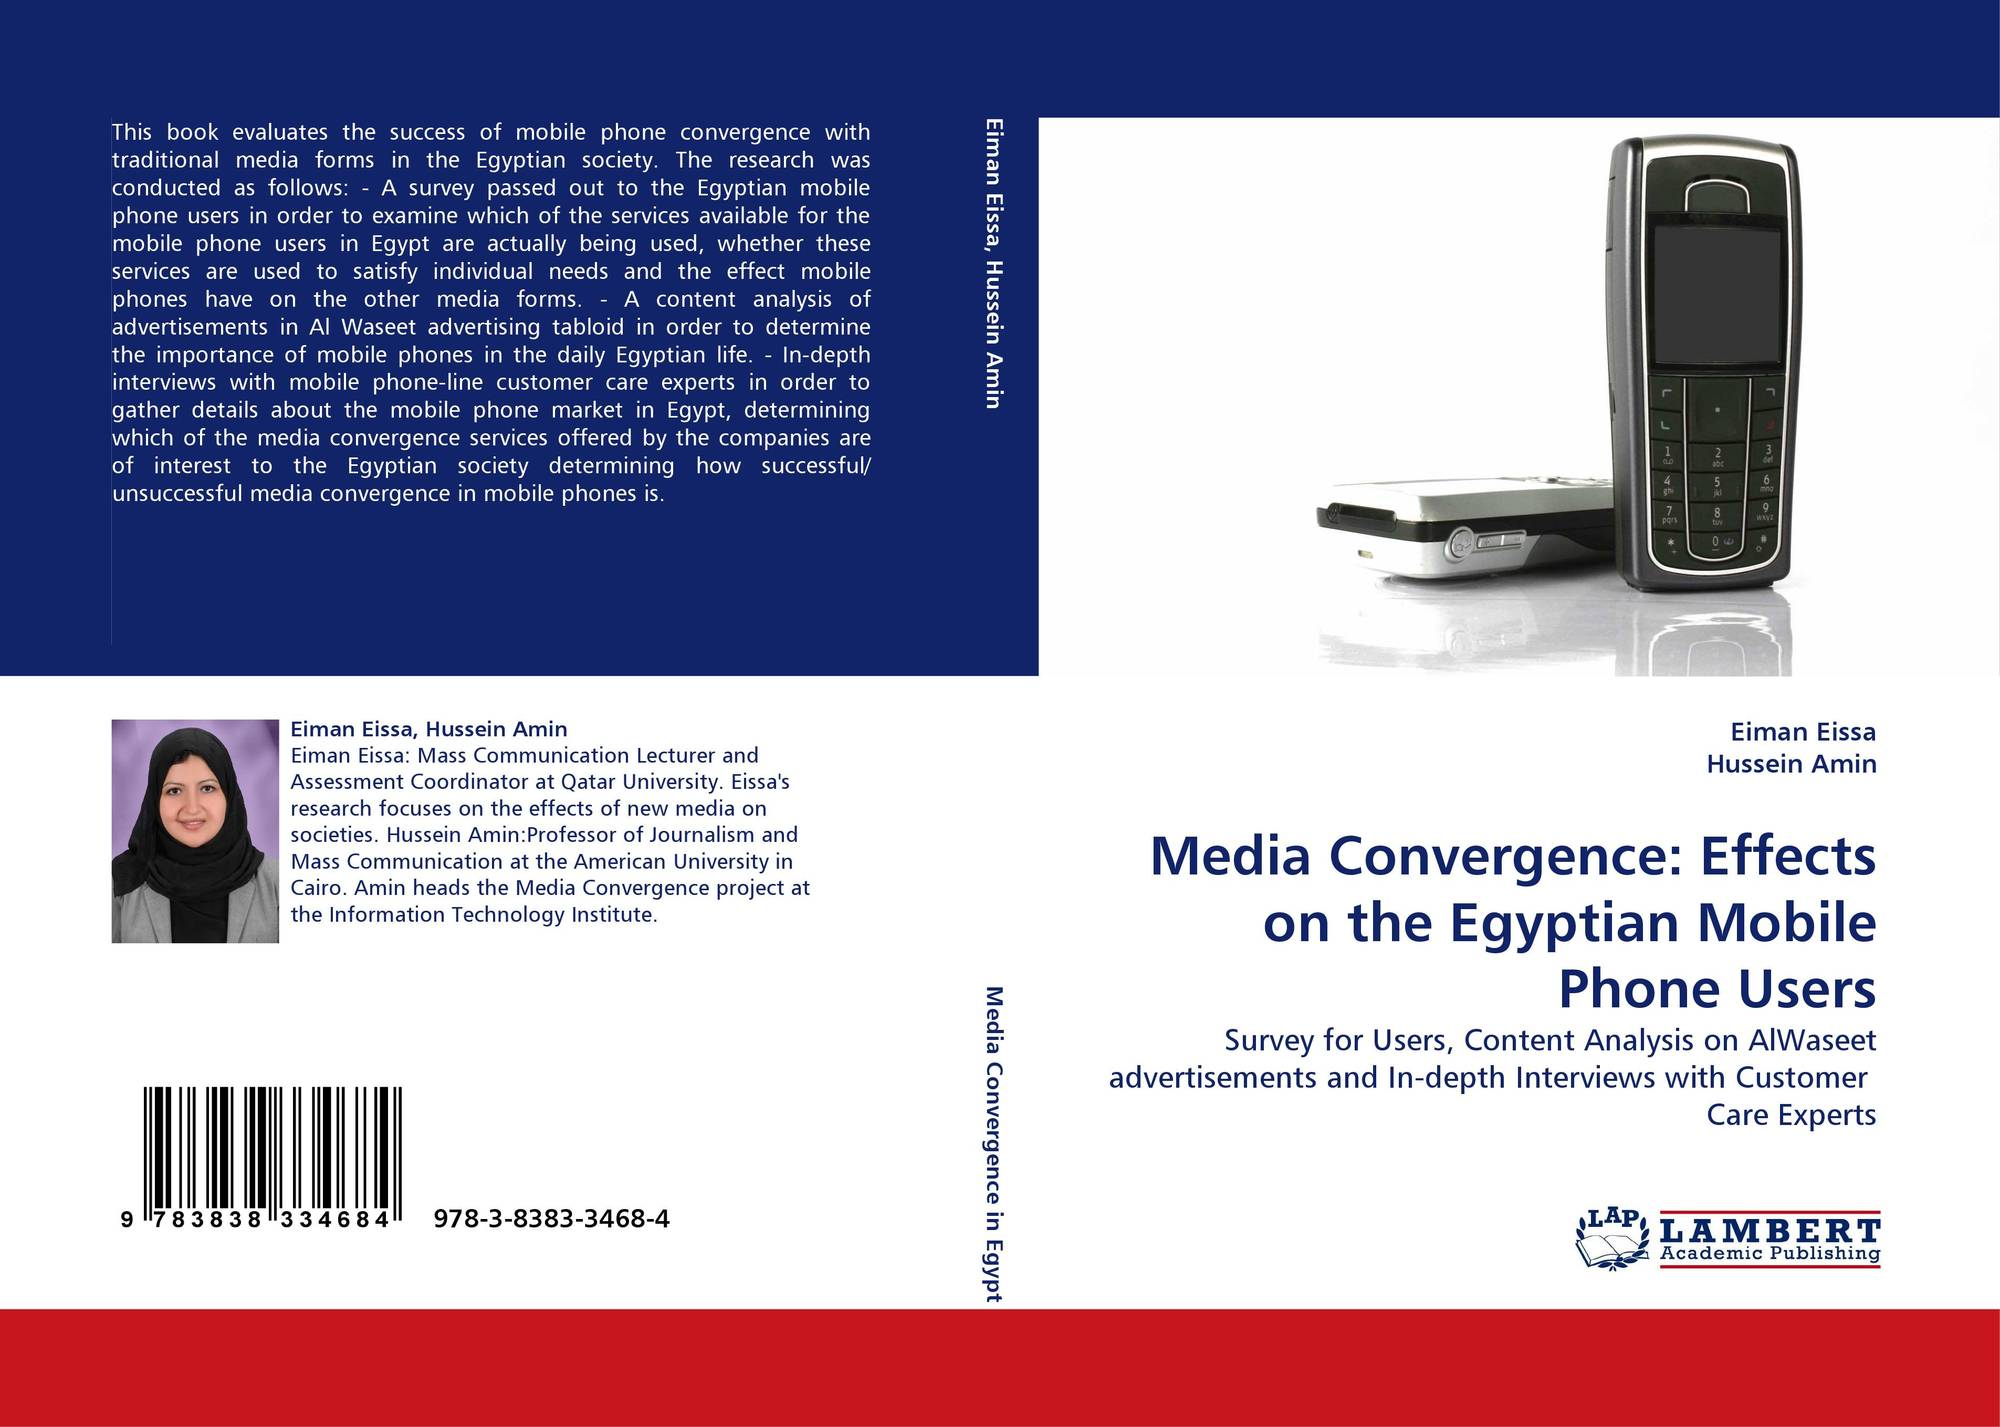 Media Convergence Effects On The Egyptian Mobile Phone Users 978 3 8383 3468 4 383833468x 9783838334684 By Eiman Eissa Hussein Amin